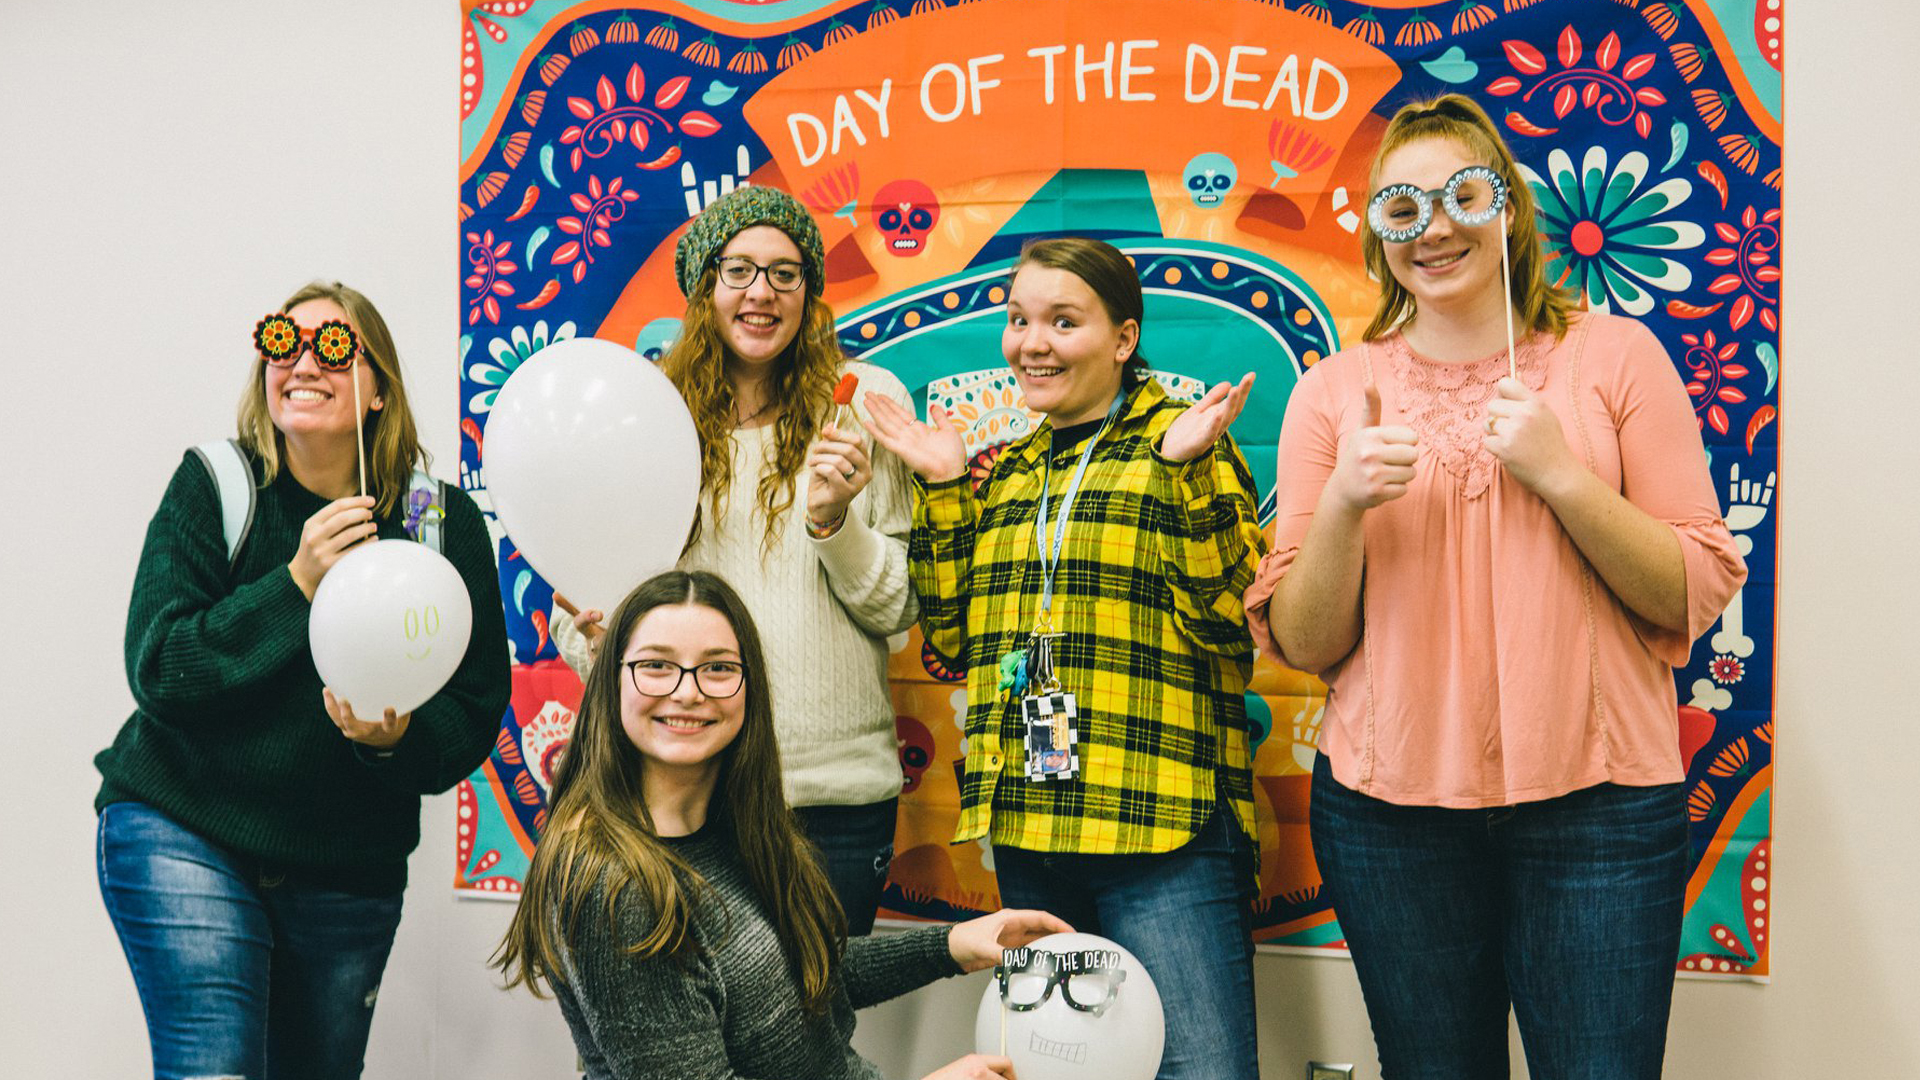 Spanish club celebrates Day of the Dead